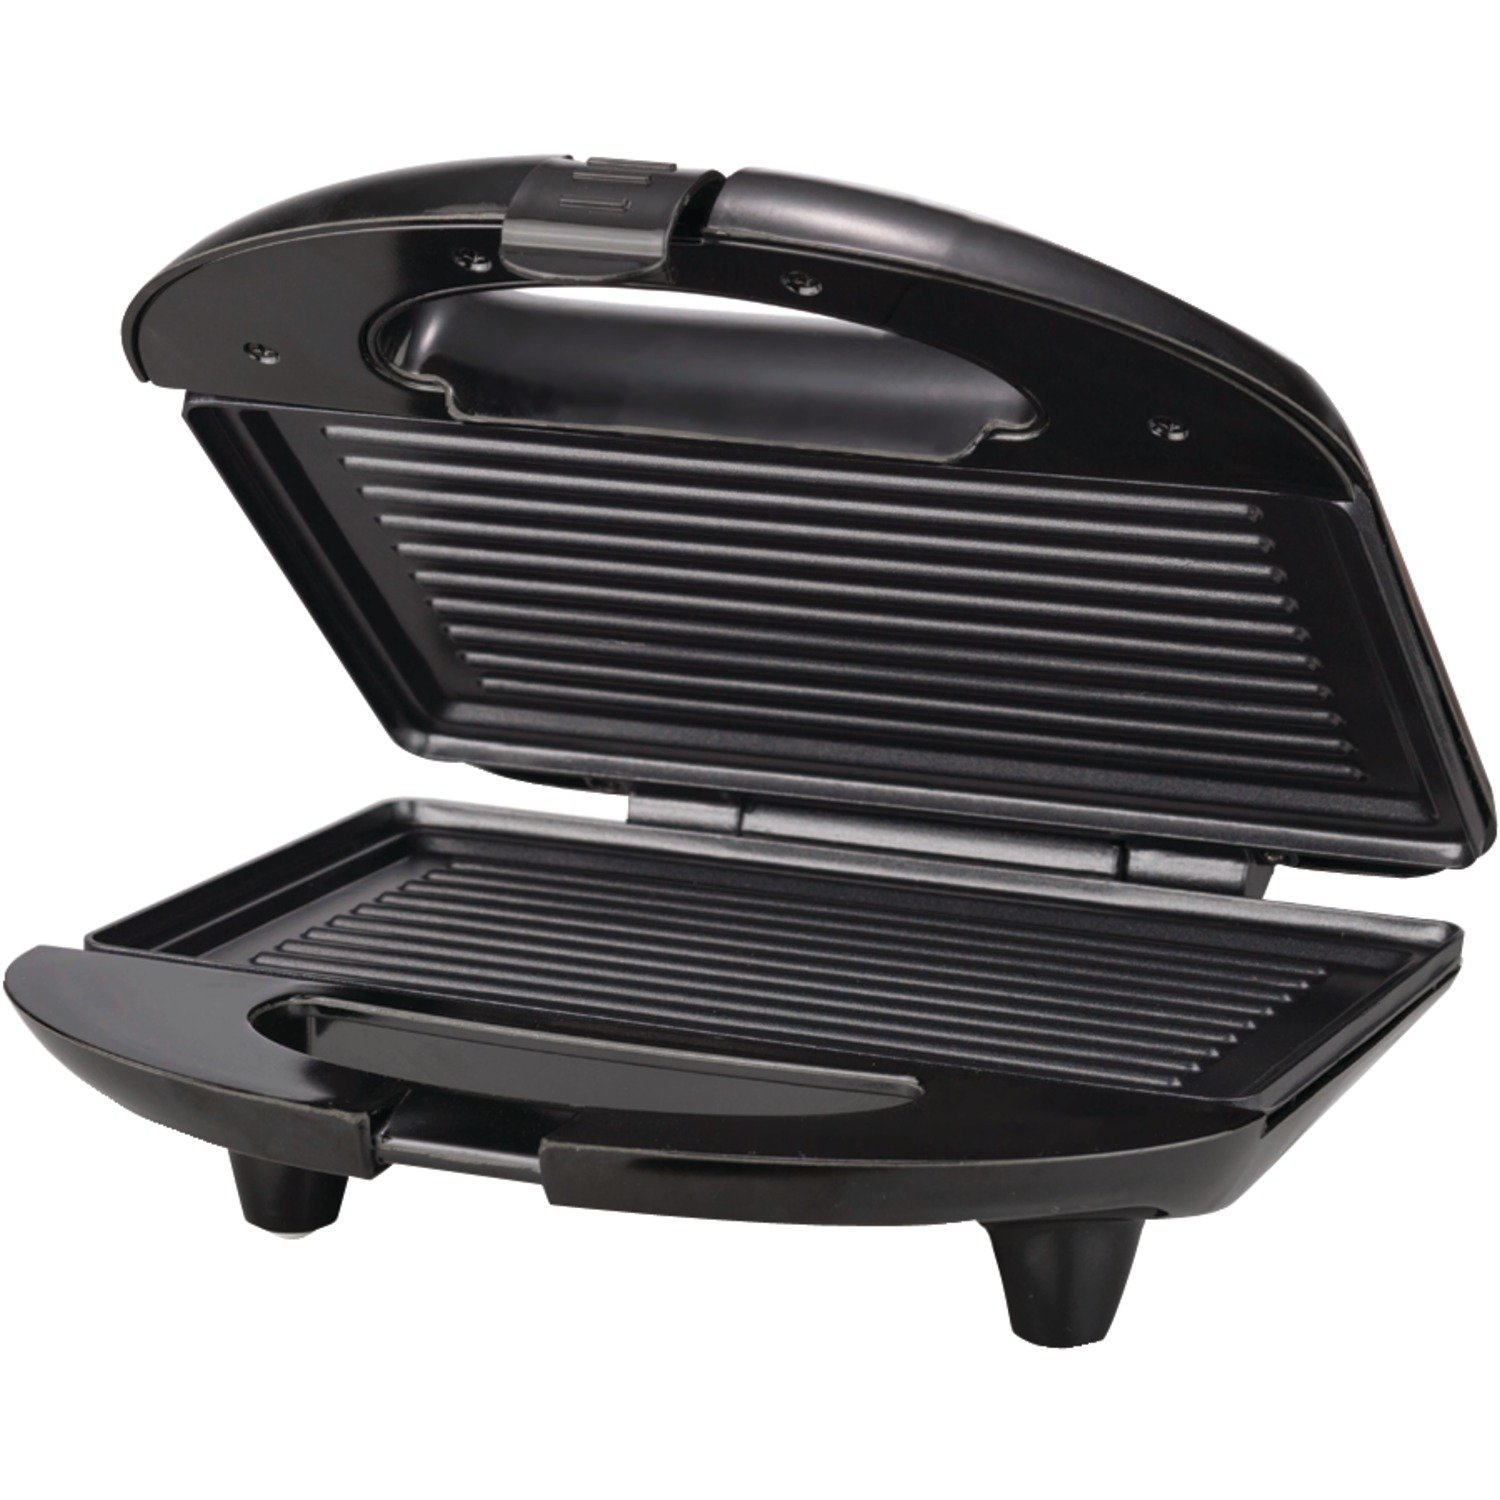 Brentwood TS-246 Non-Stick Panini Press and Sandwich Maker, Black